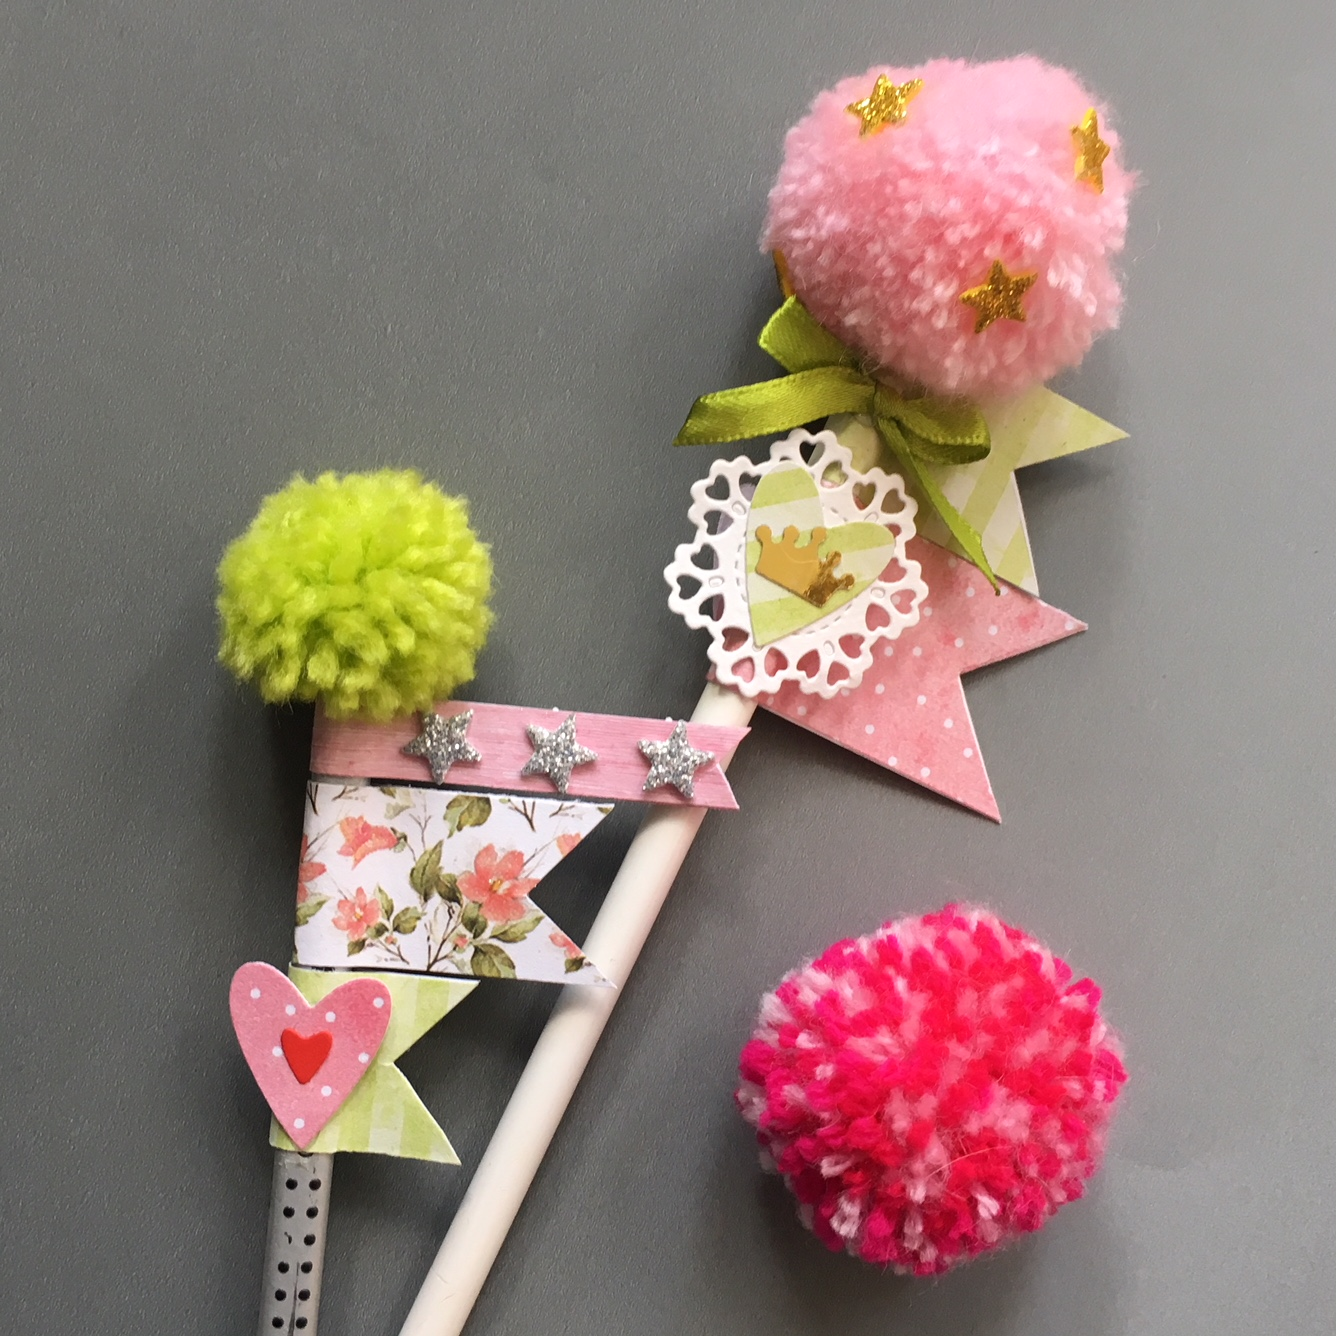 pencils, decorated with pompoms, hearts and ribbon bows